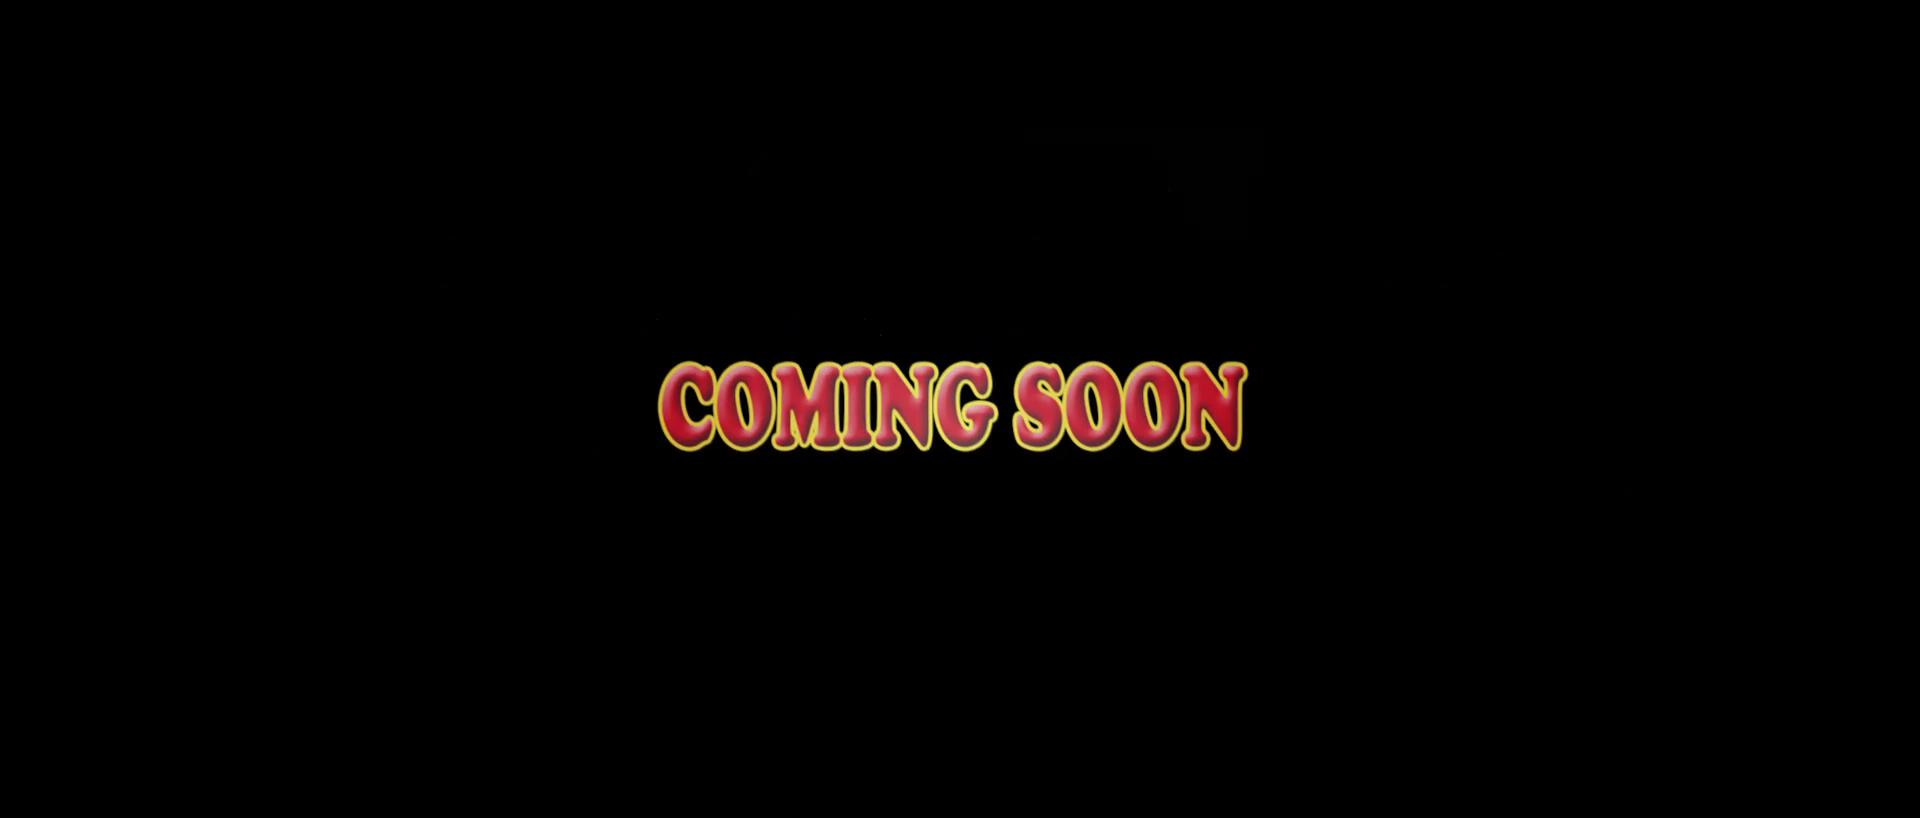 rfmt-153-coming-soon